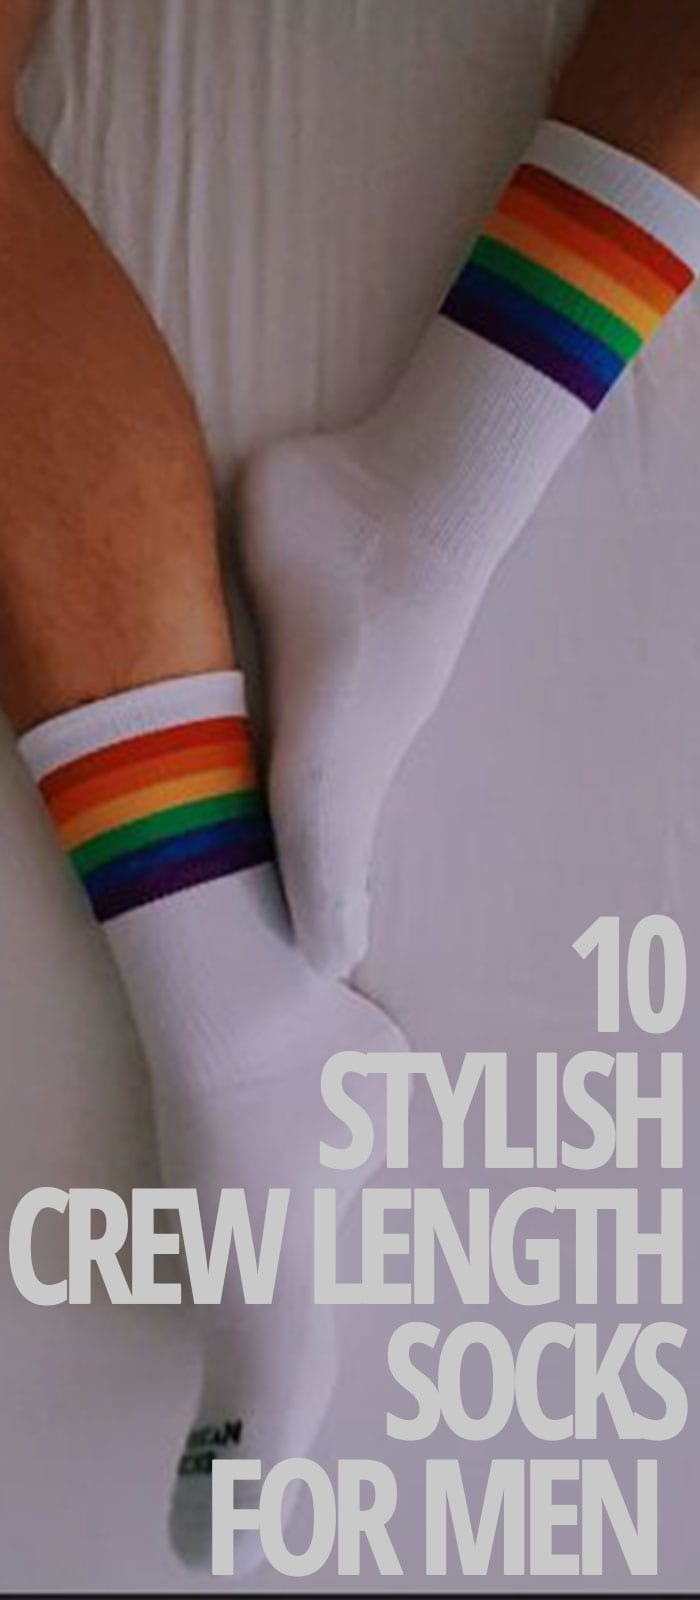 STYLISH CREW LENGTH-SOCKS FOR MEN